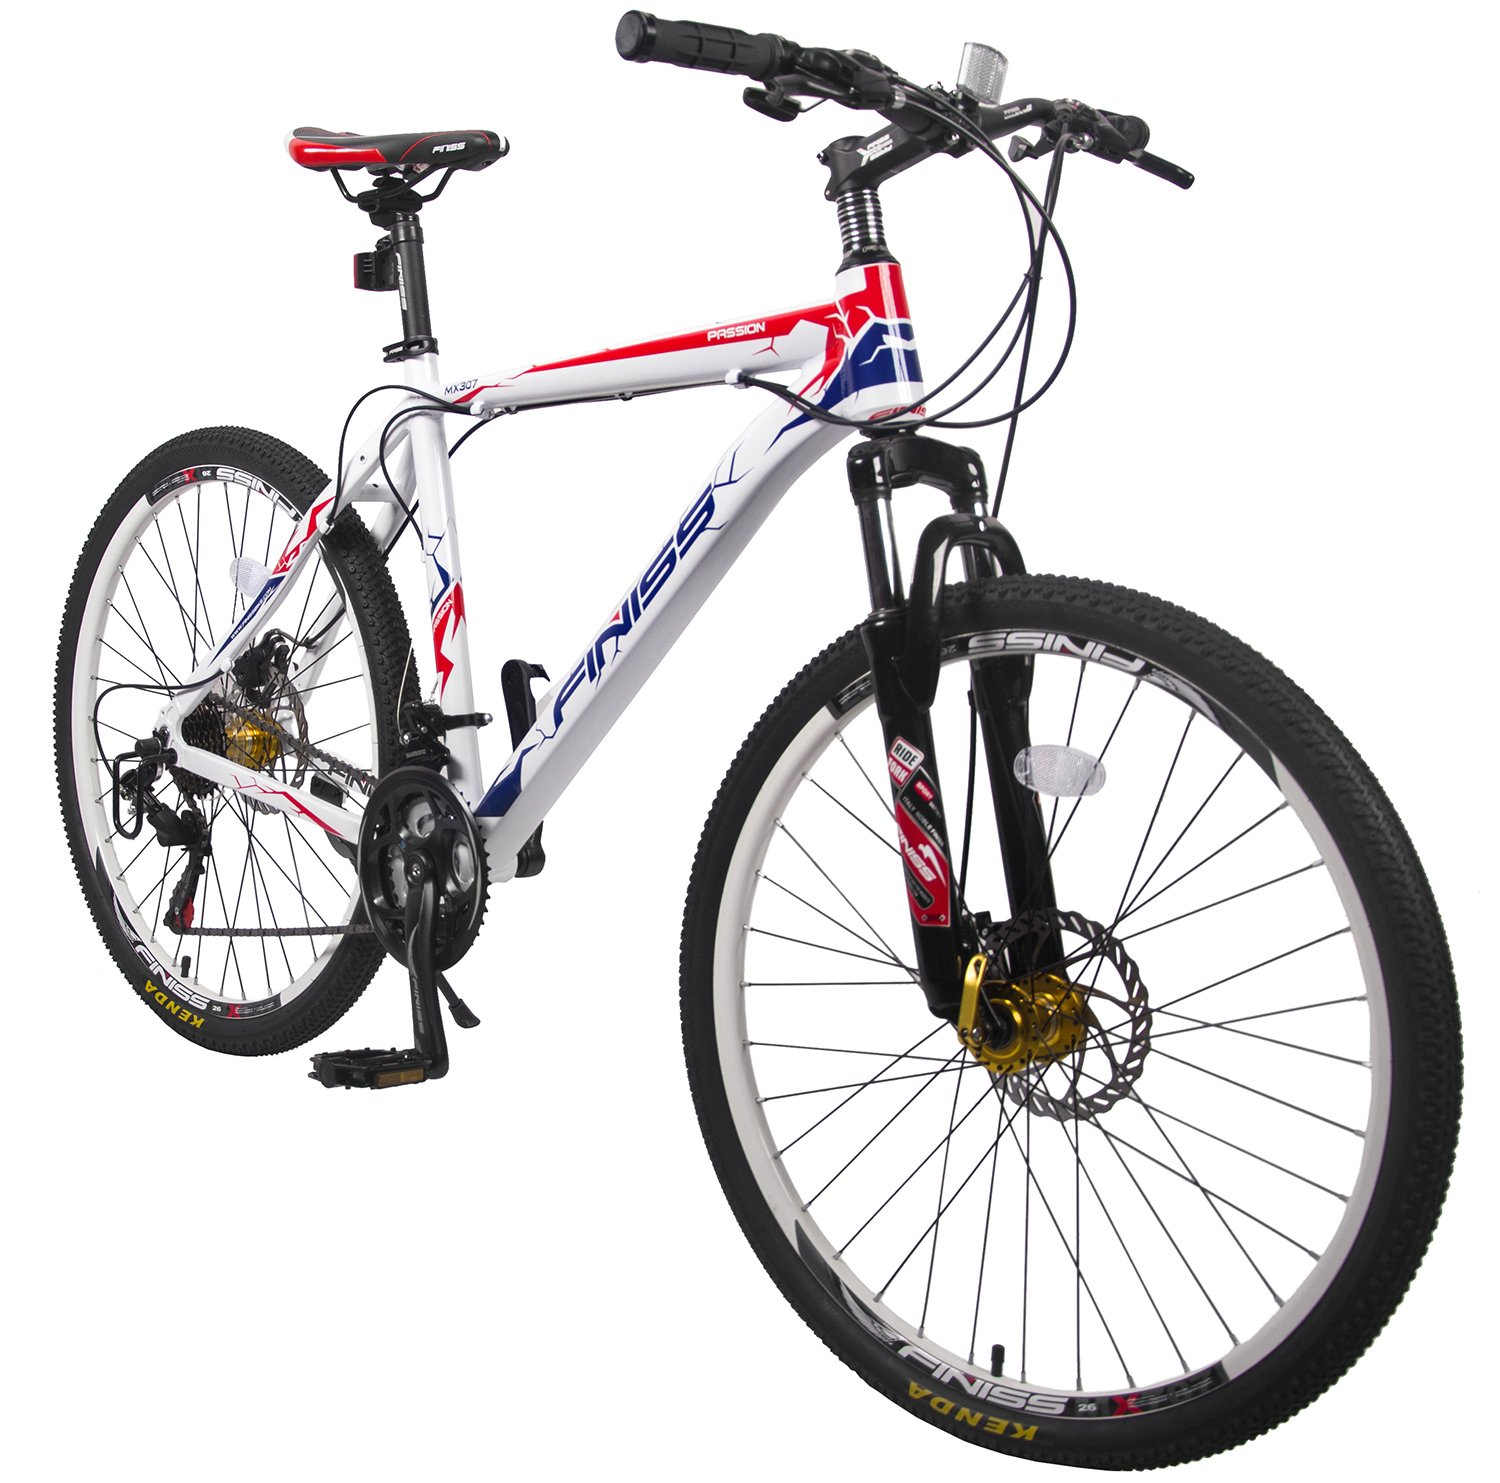 Merax Finiss 26″ Aluminum 21 Speed Mountain Bike 1